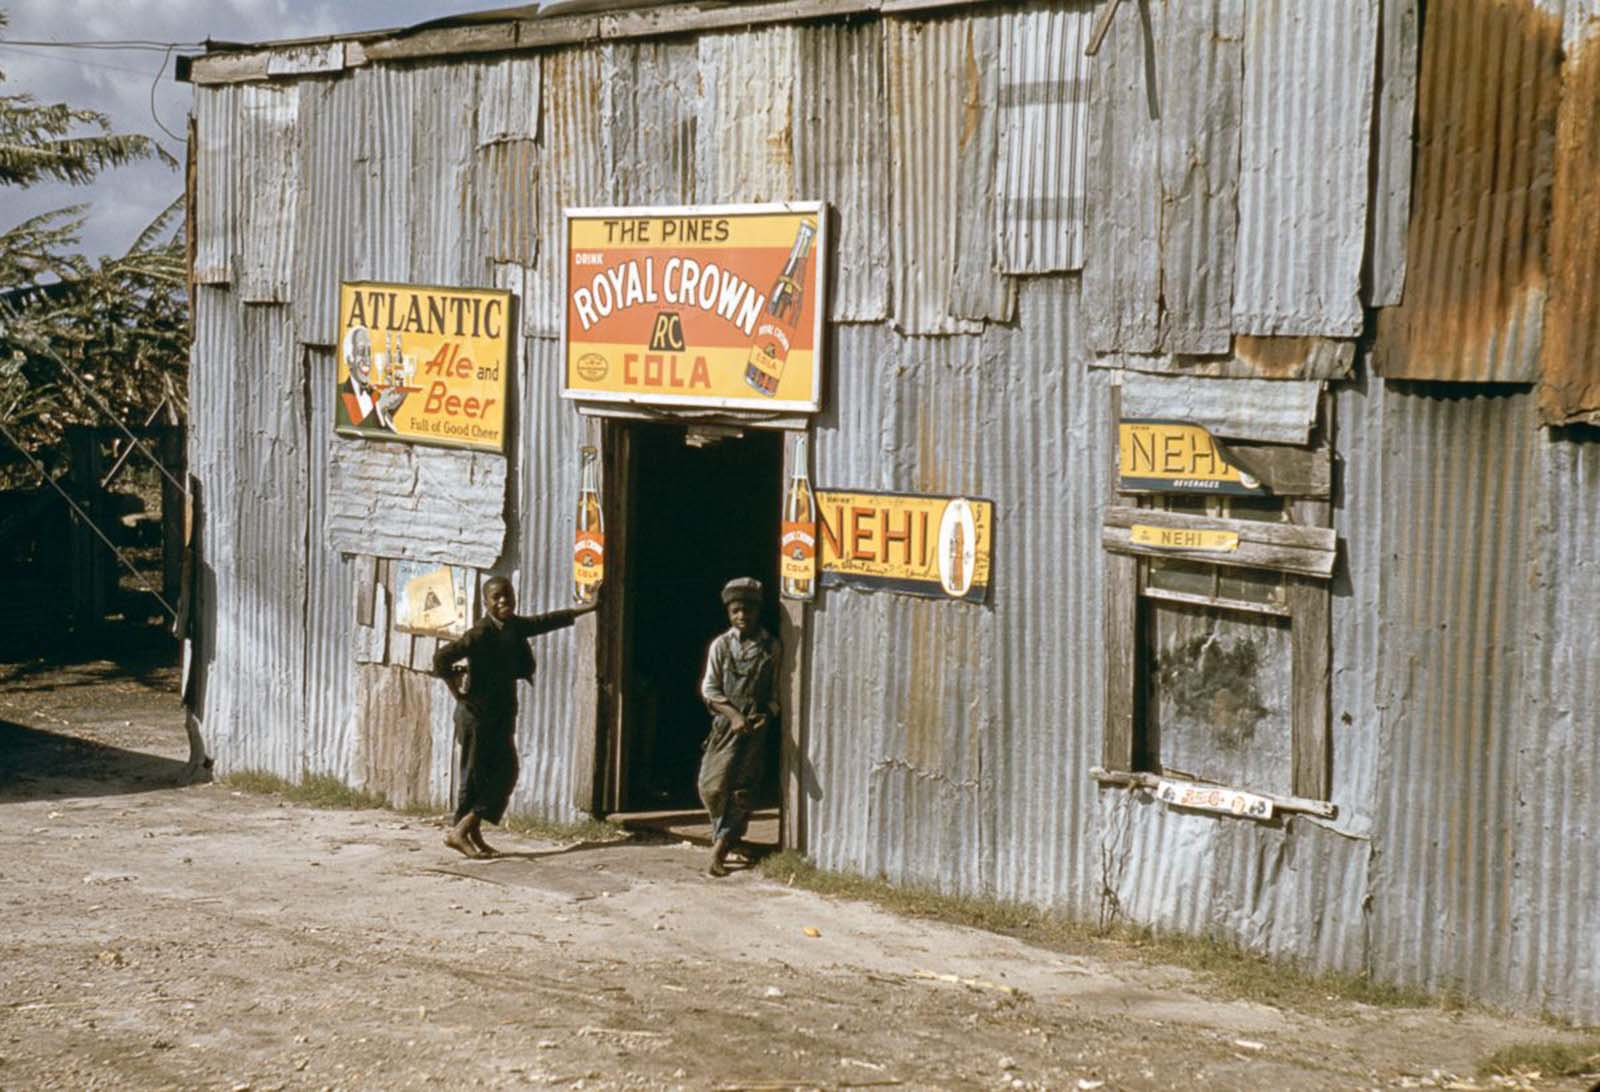 Migrant children stand outside a juke joint in Belle Glade, Florida. 1941.